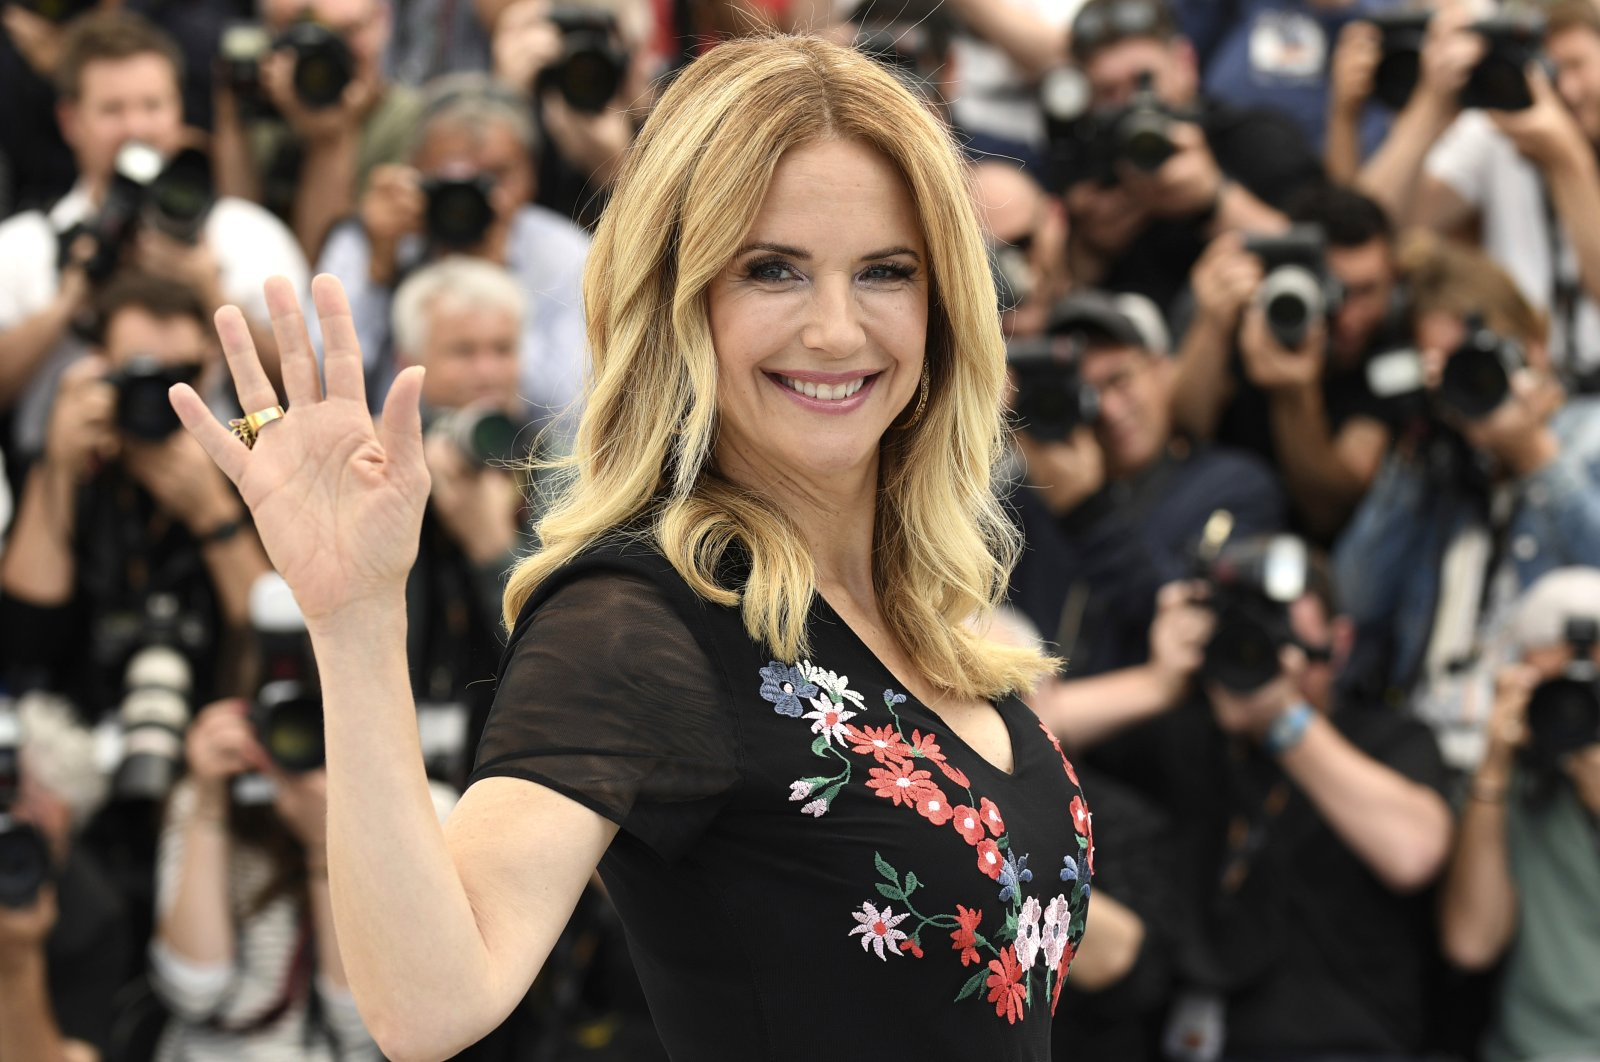 In this file photo, actress Kelly Preston poses for photographers during a photocall for the film 'Gotti' at the 71st international film festival, Cannes, southern France, May 15, 2018.  (AP PHOTO)